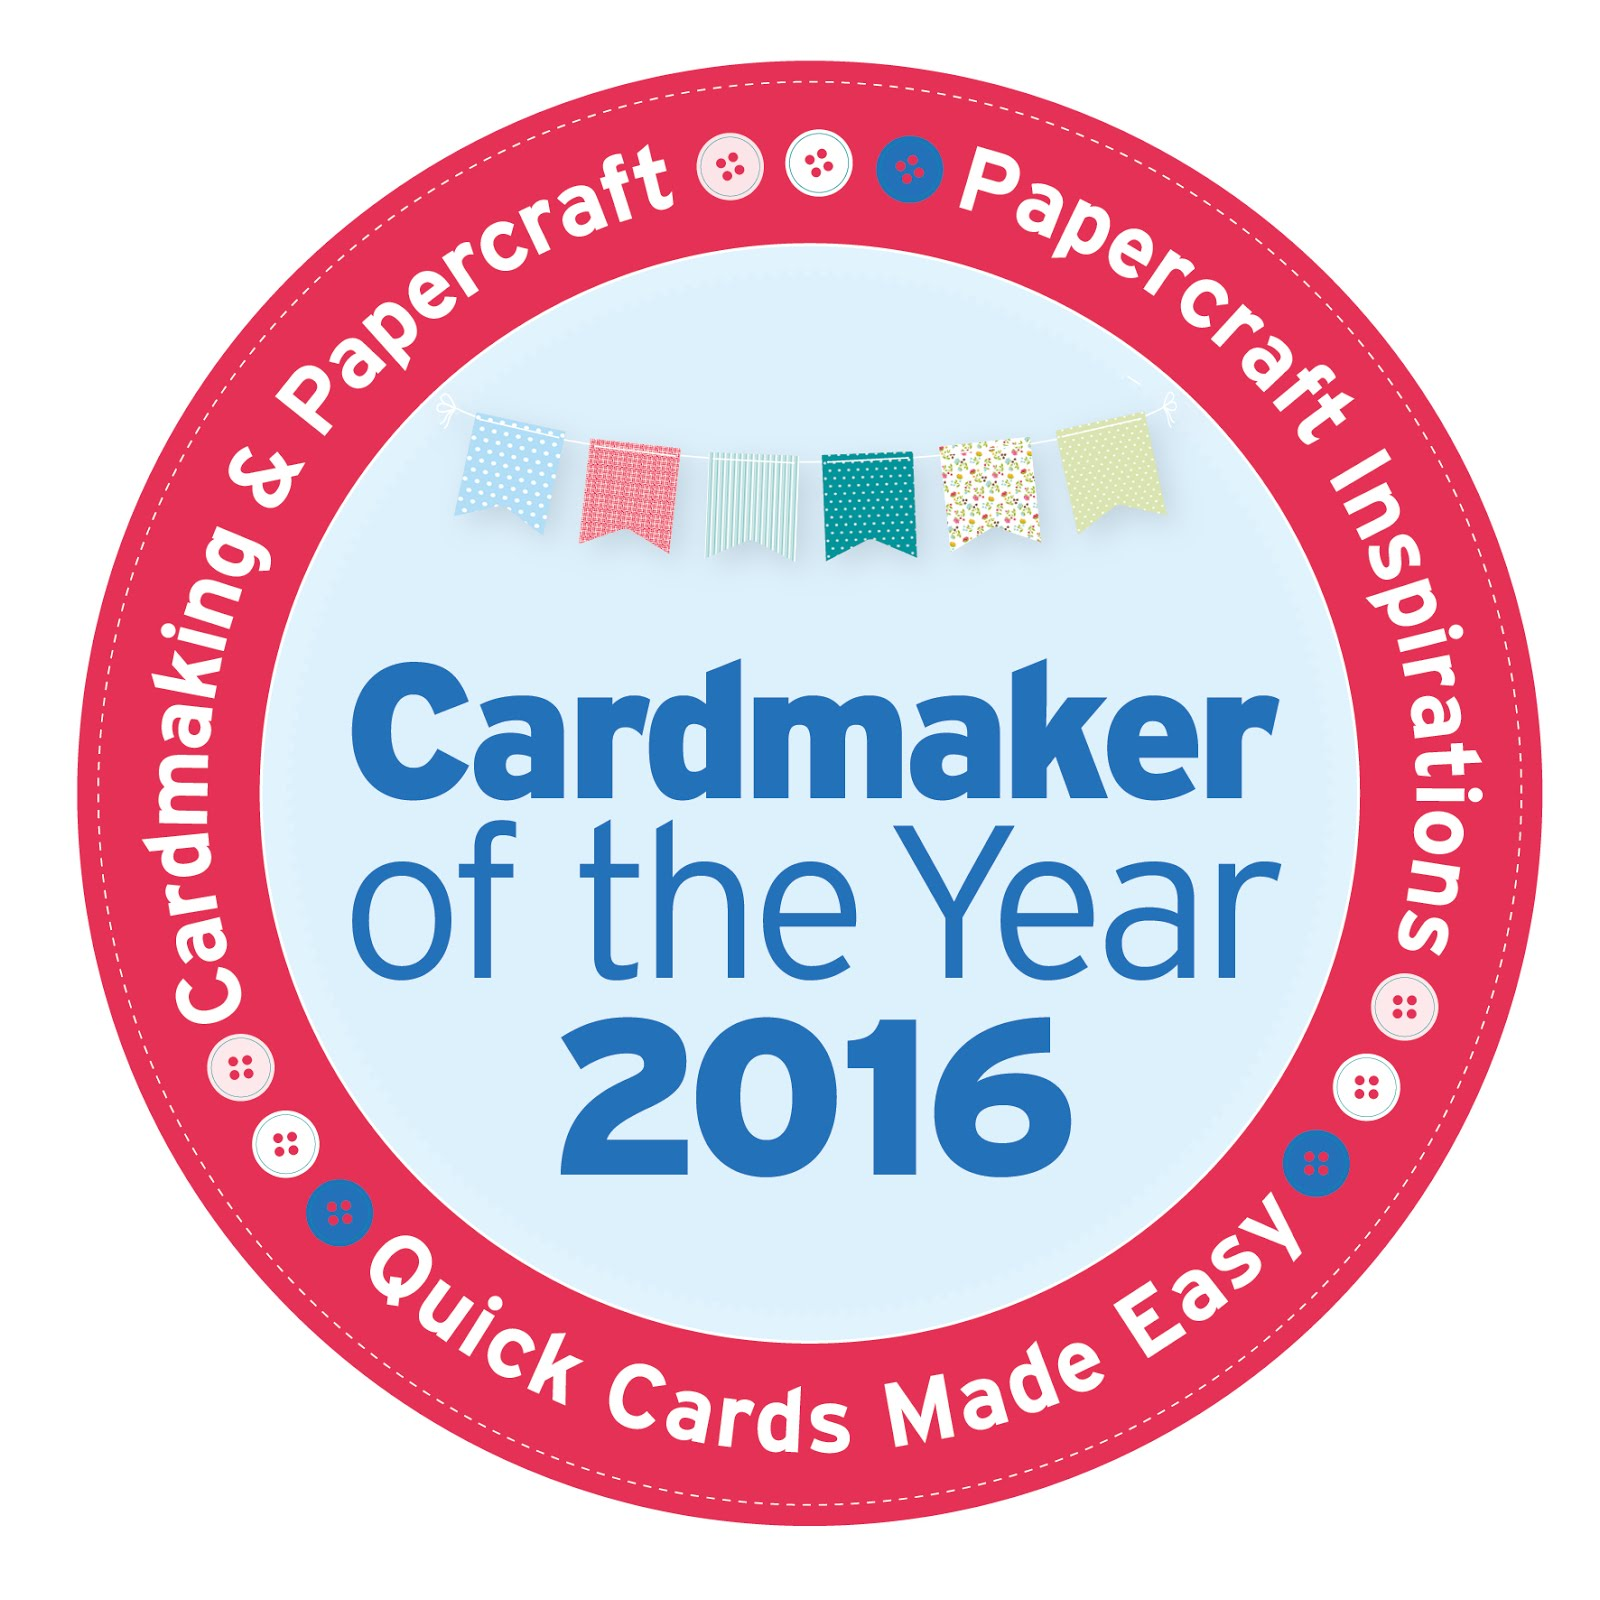 Cardmaker of the Year 2016